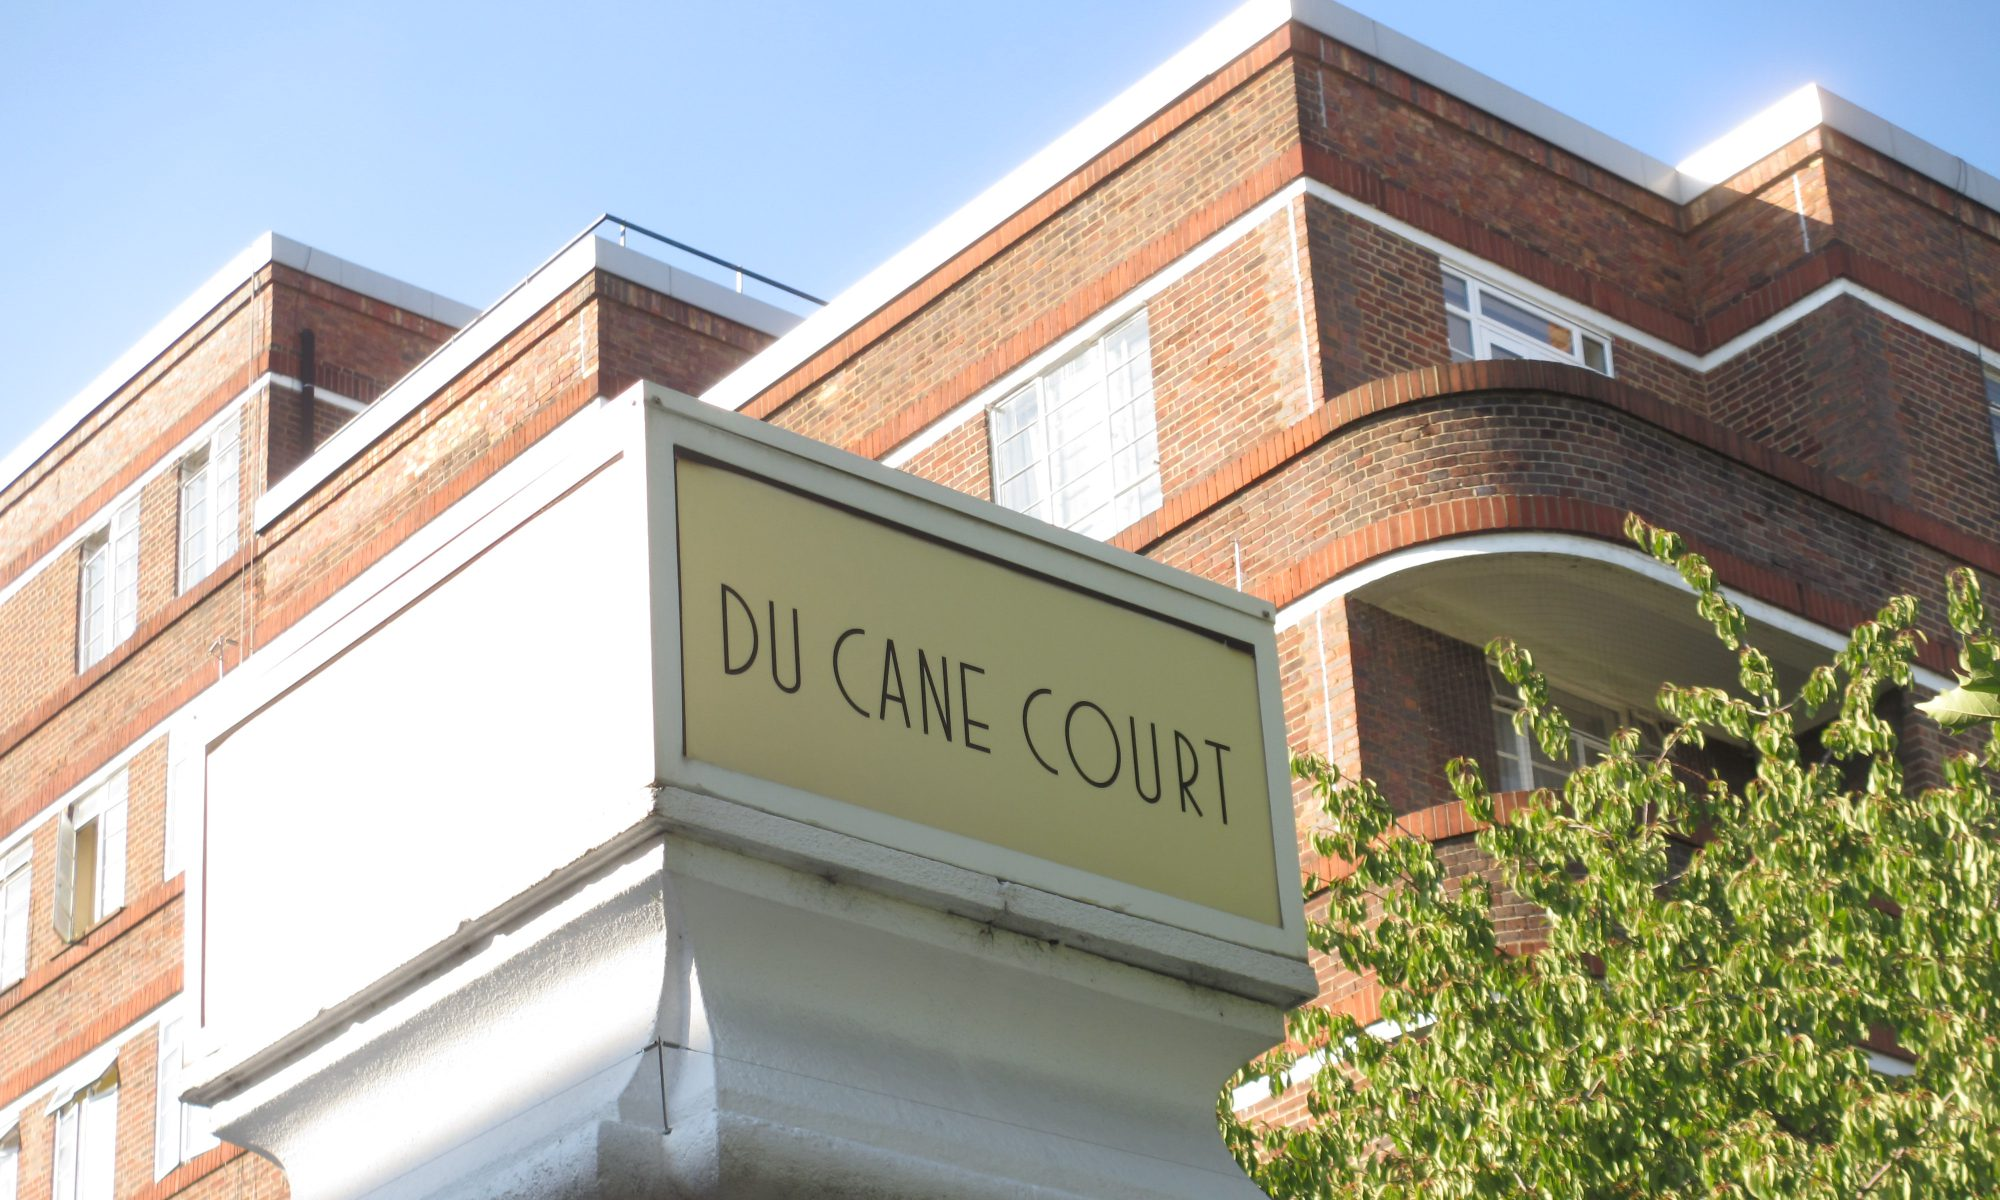 du cane court balham art deco du cane court balham high road